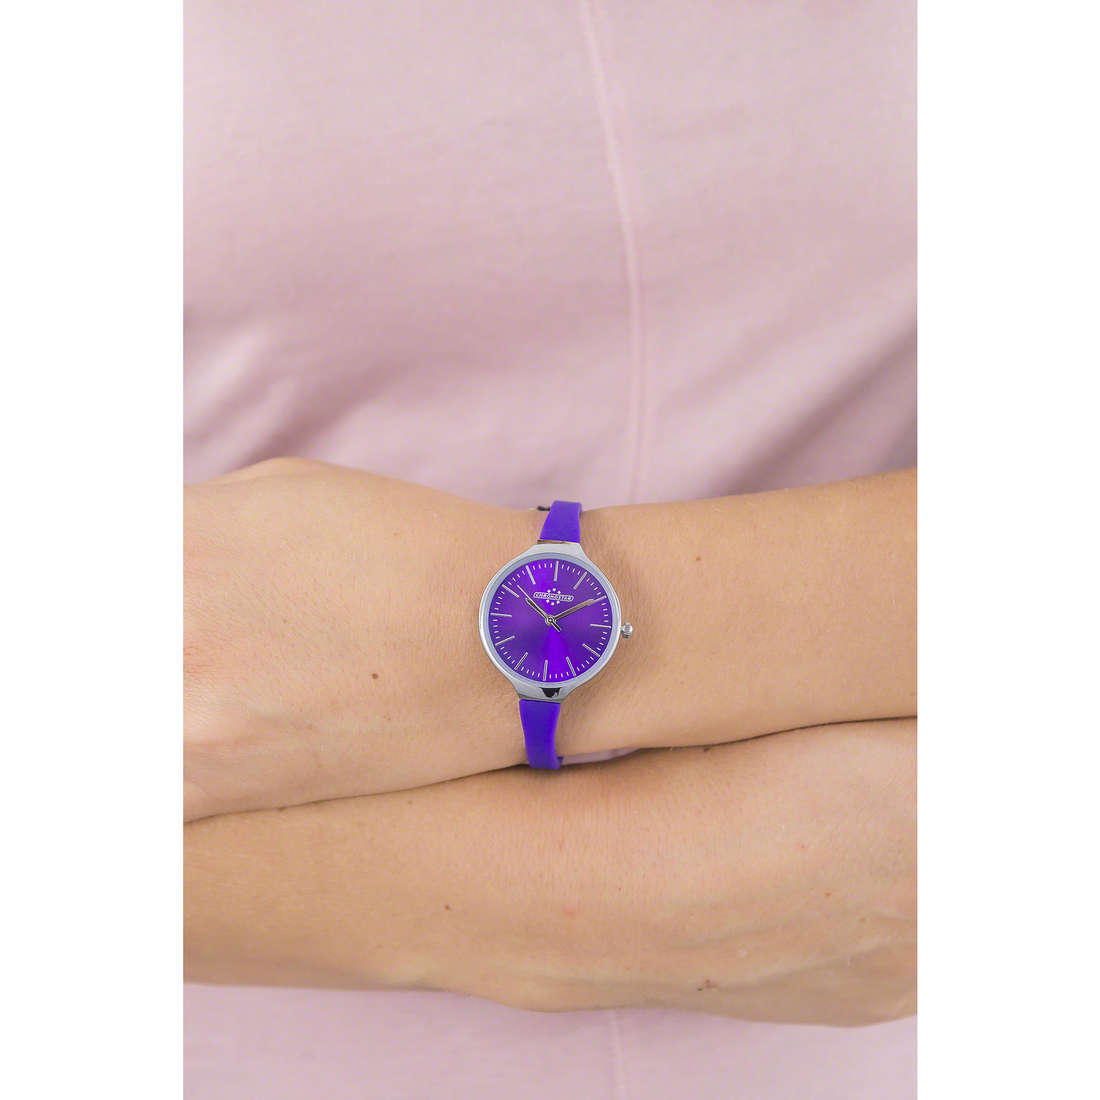 Chronostar seul le temps Toffee femme R3751248506 photo wearing